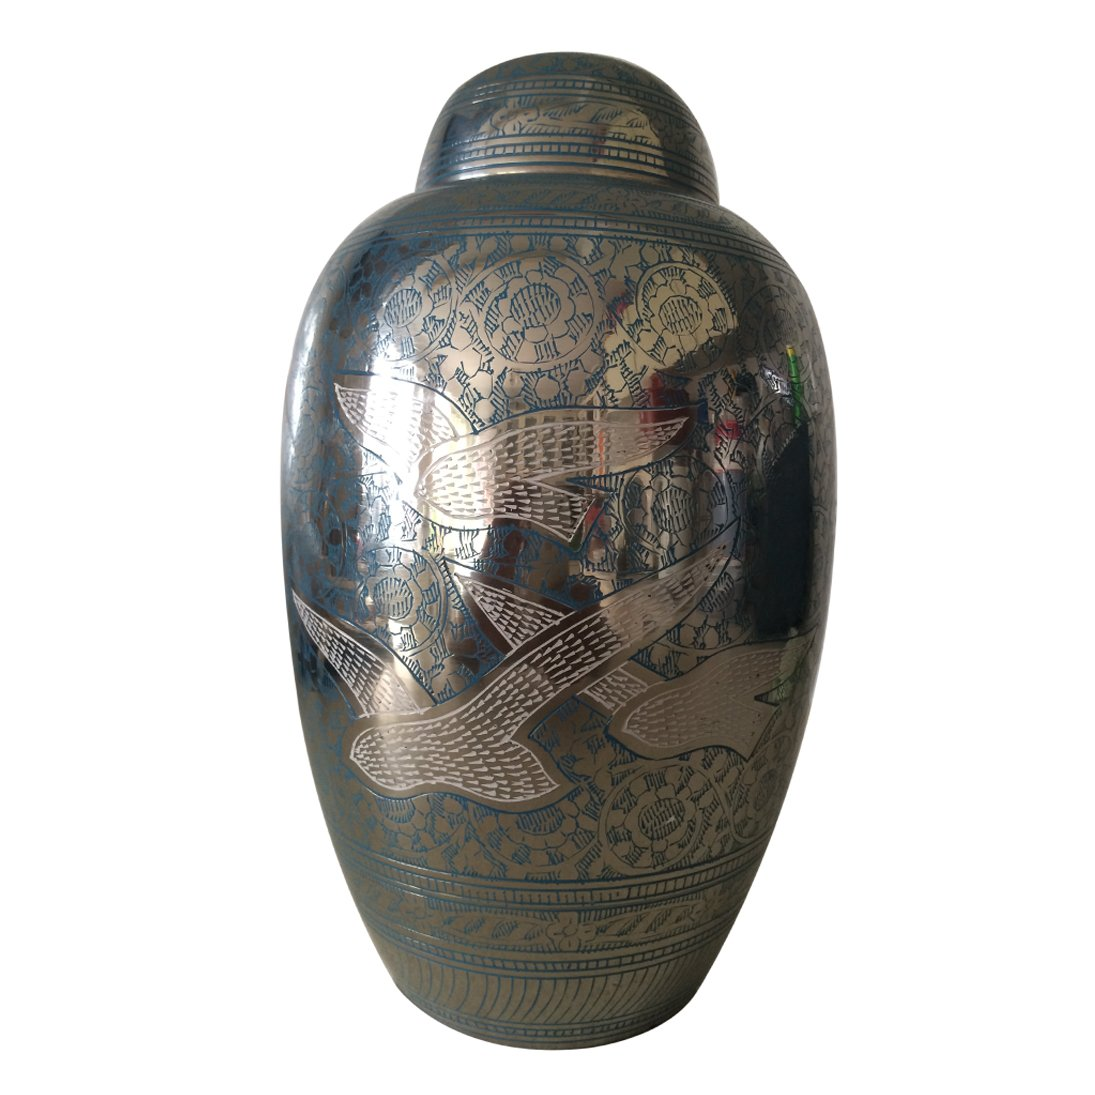 Large Size Going Home Birds Blue Color Adult Funeral Cremation Urn For Adult Ashes